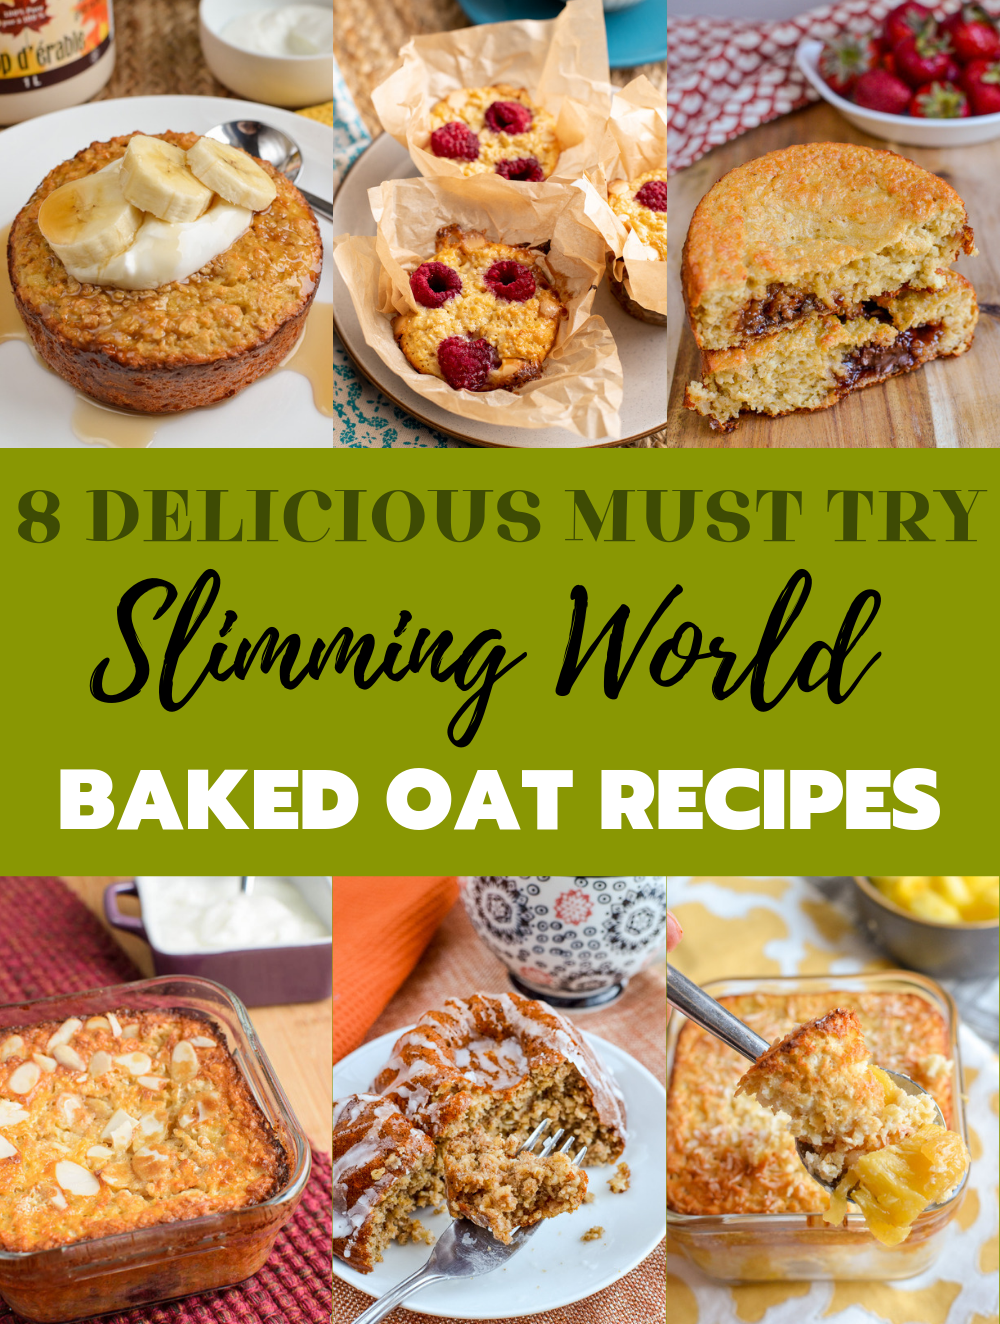 8 slimming world baked oats recipes collage.